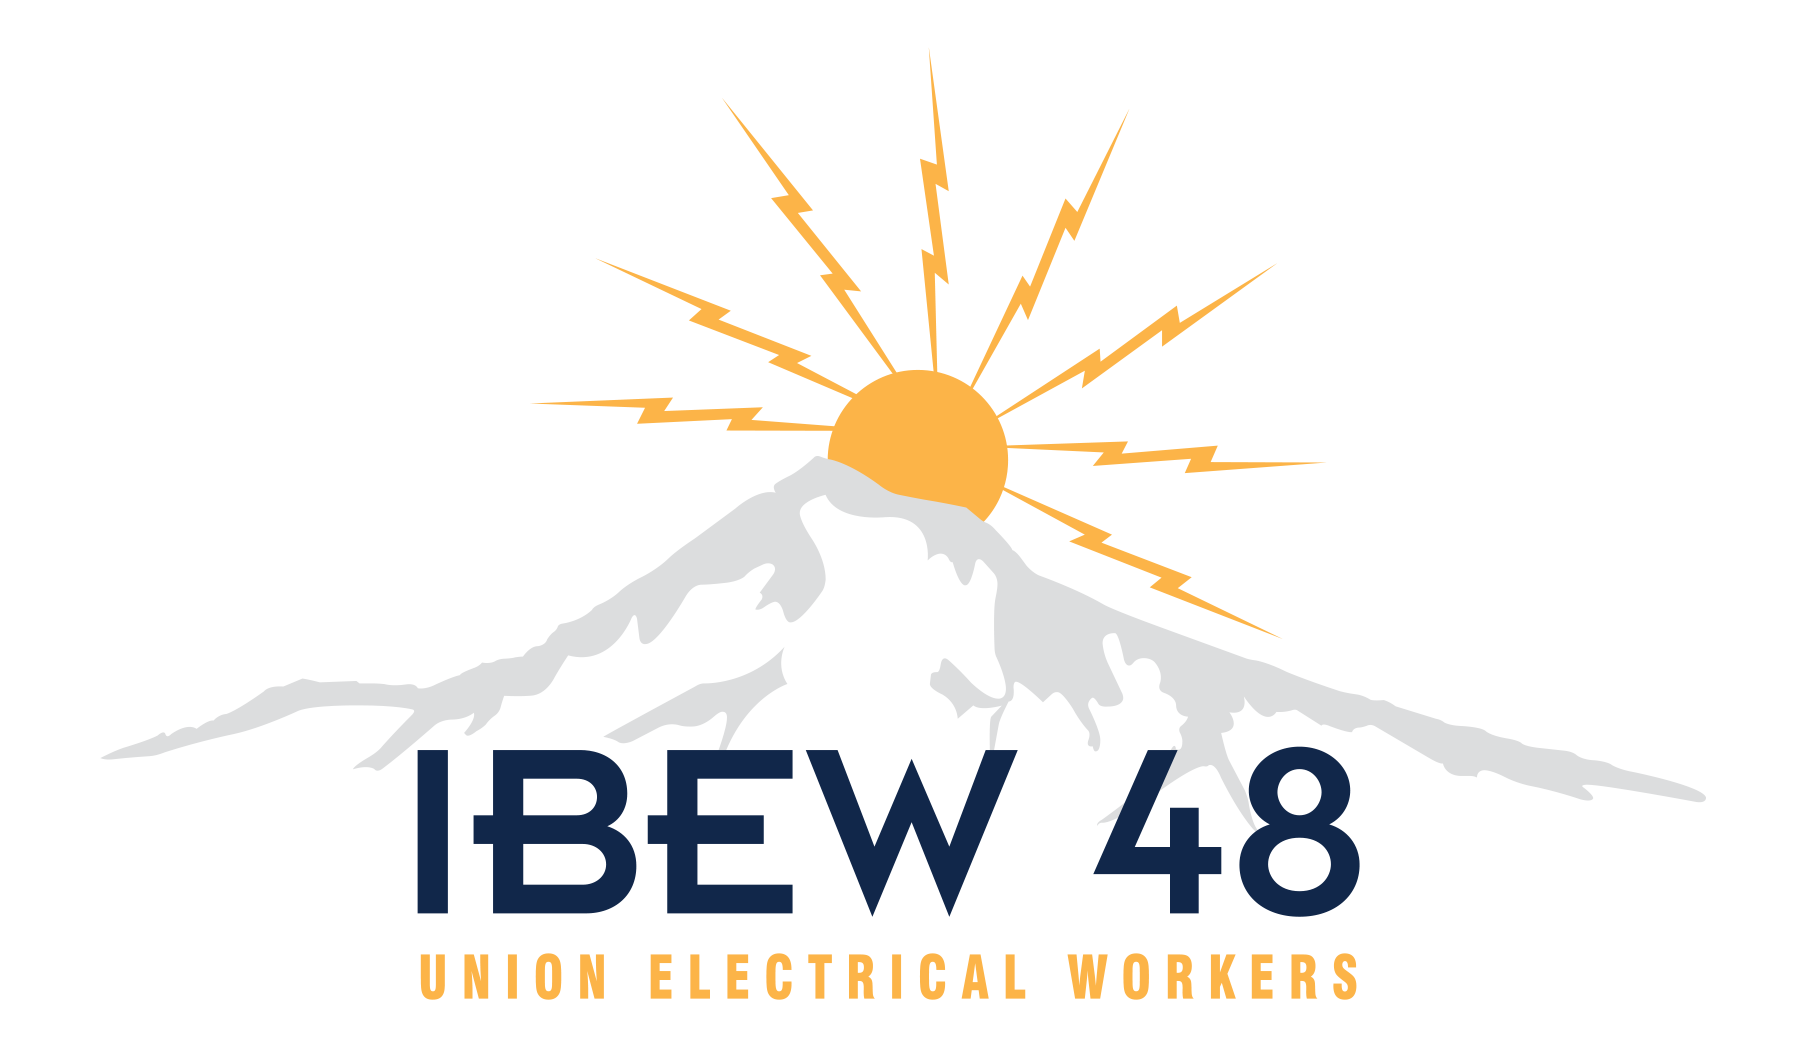 International Brotherhood of Electrical Workers Local 48